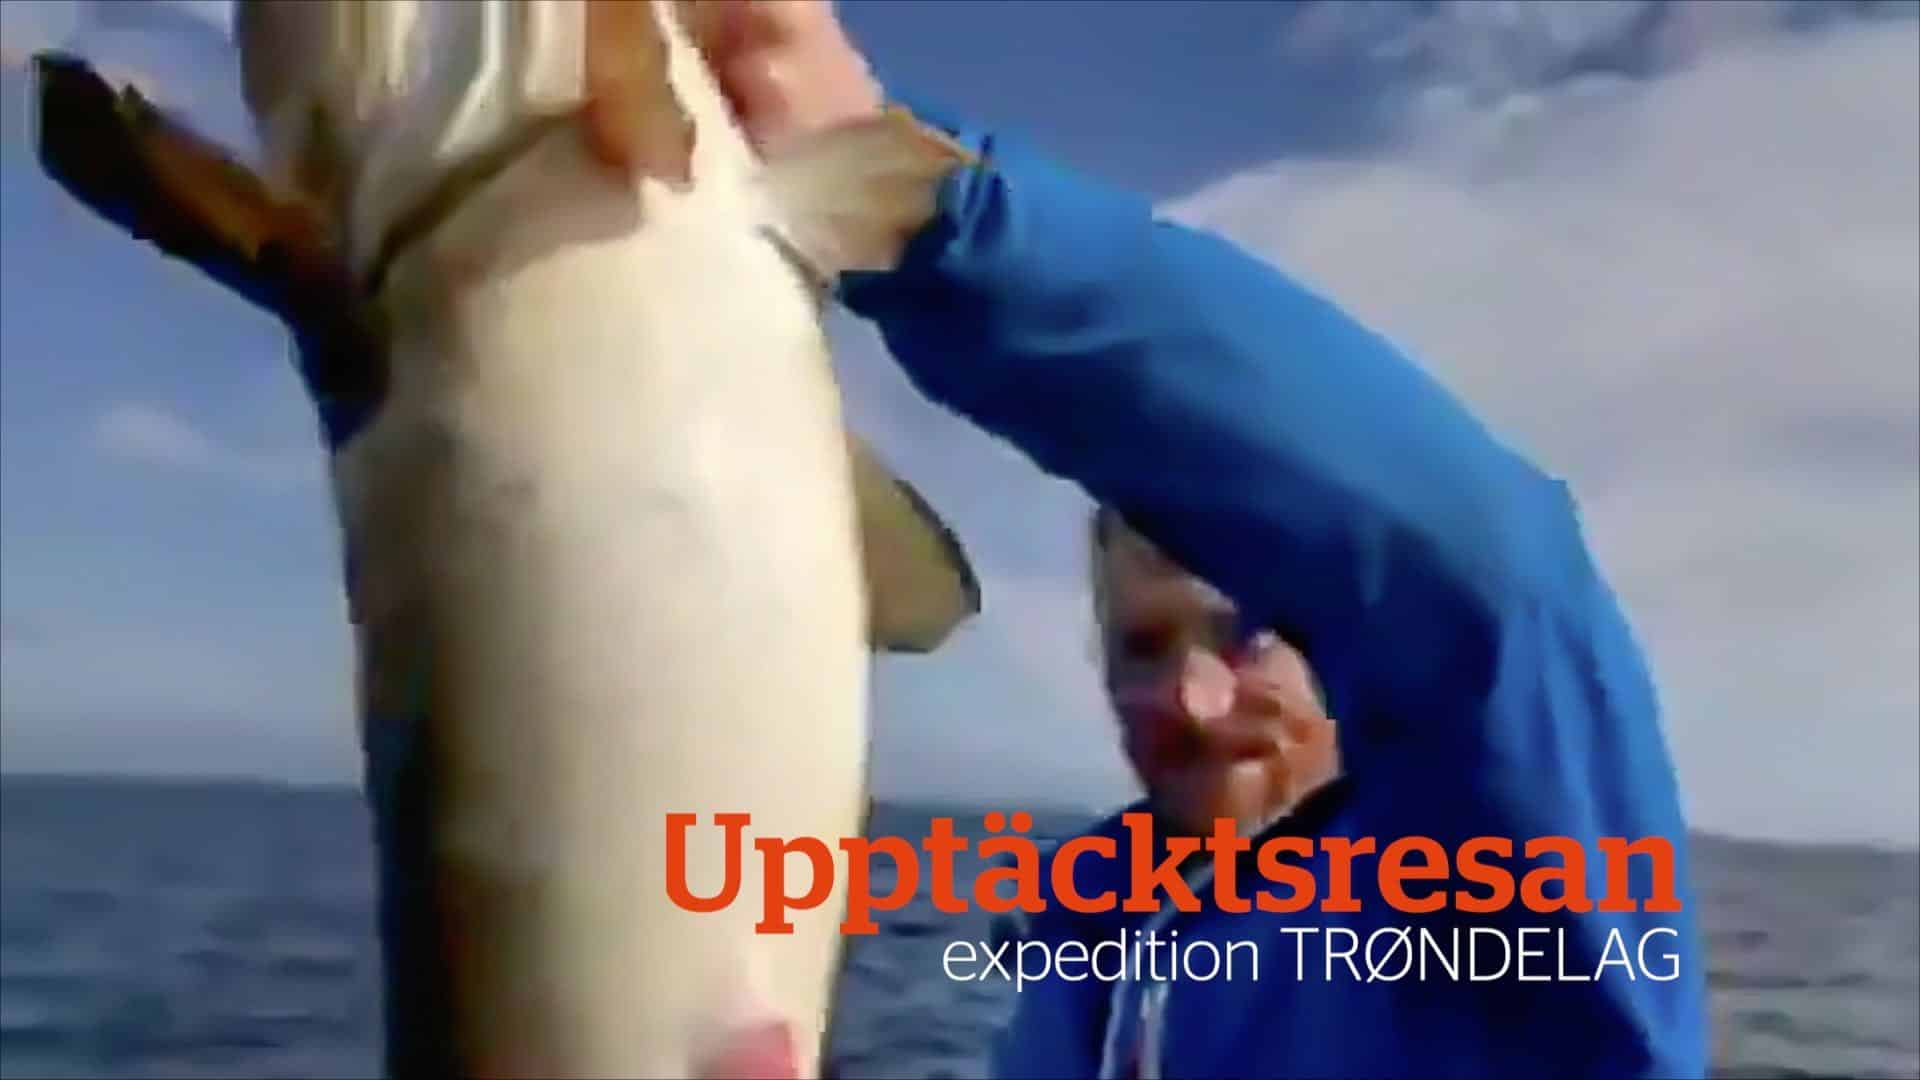 180709 Upptacktsresan Expedition Trondelag puffar